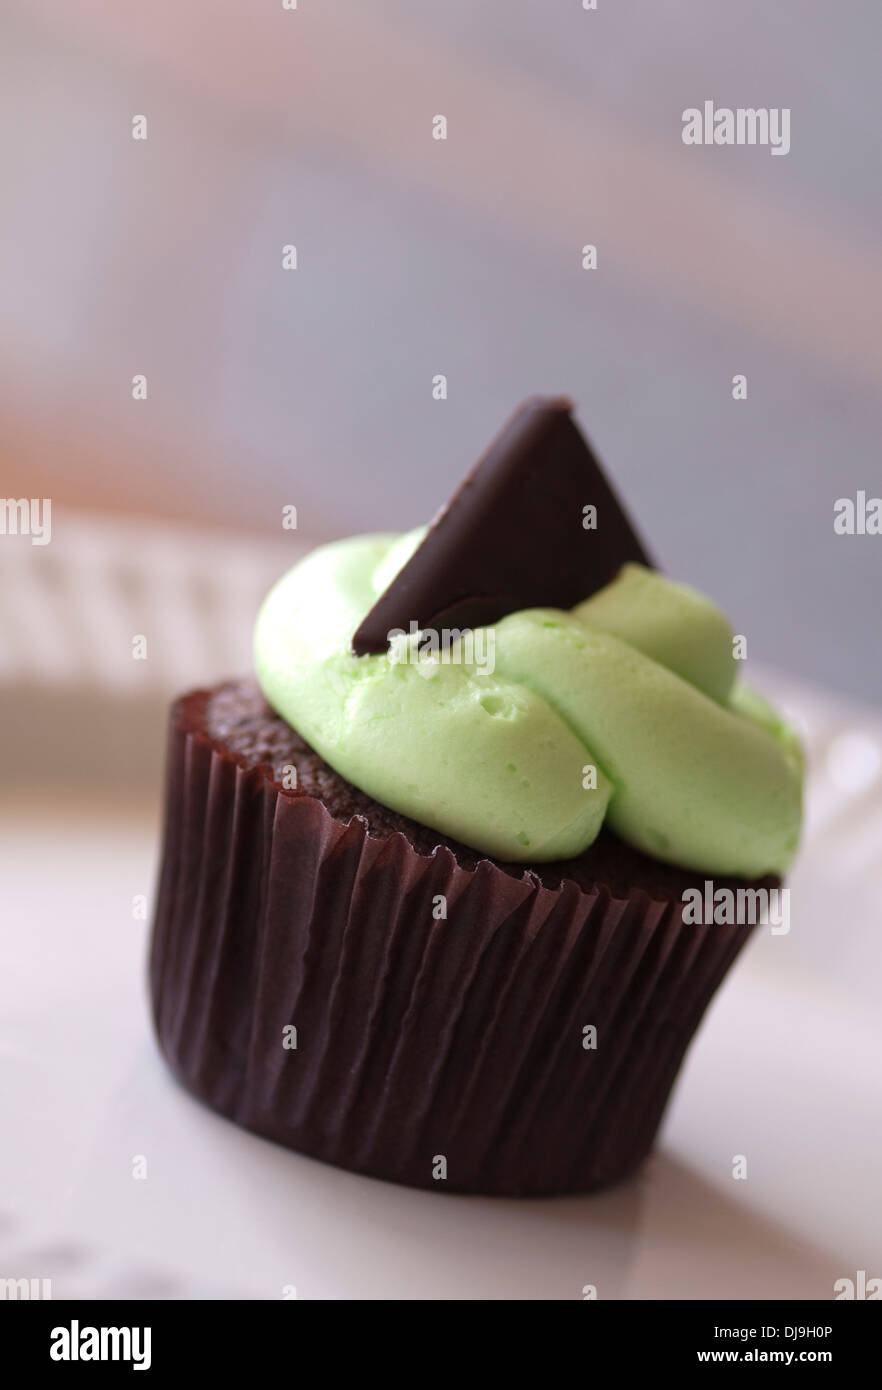 Still life food image of a cupcake with mint green fondant icing - Stock Image